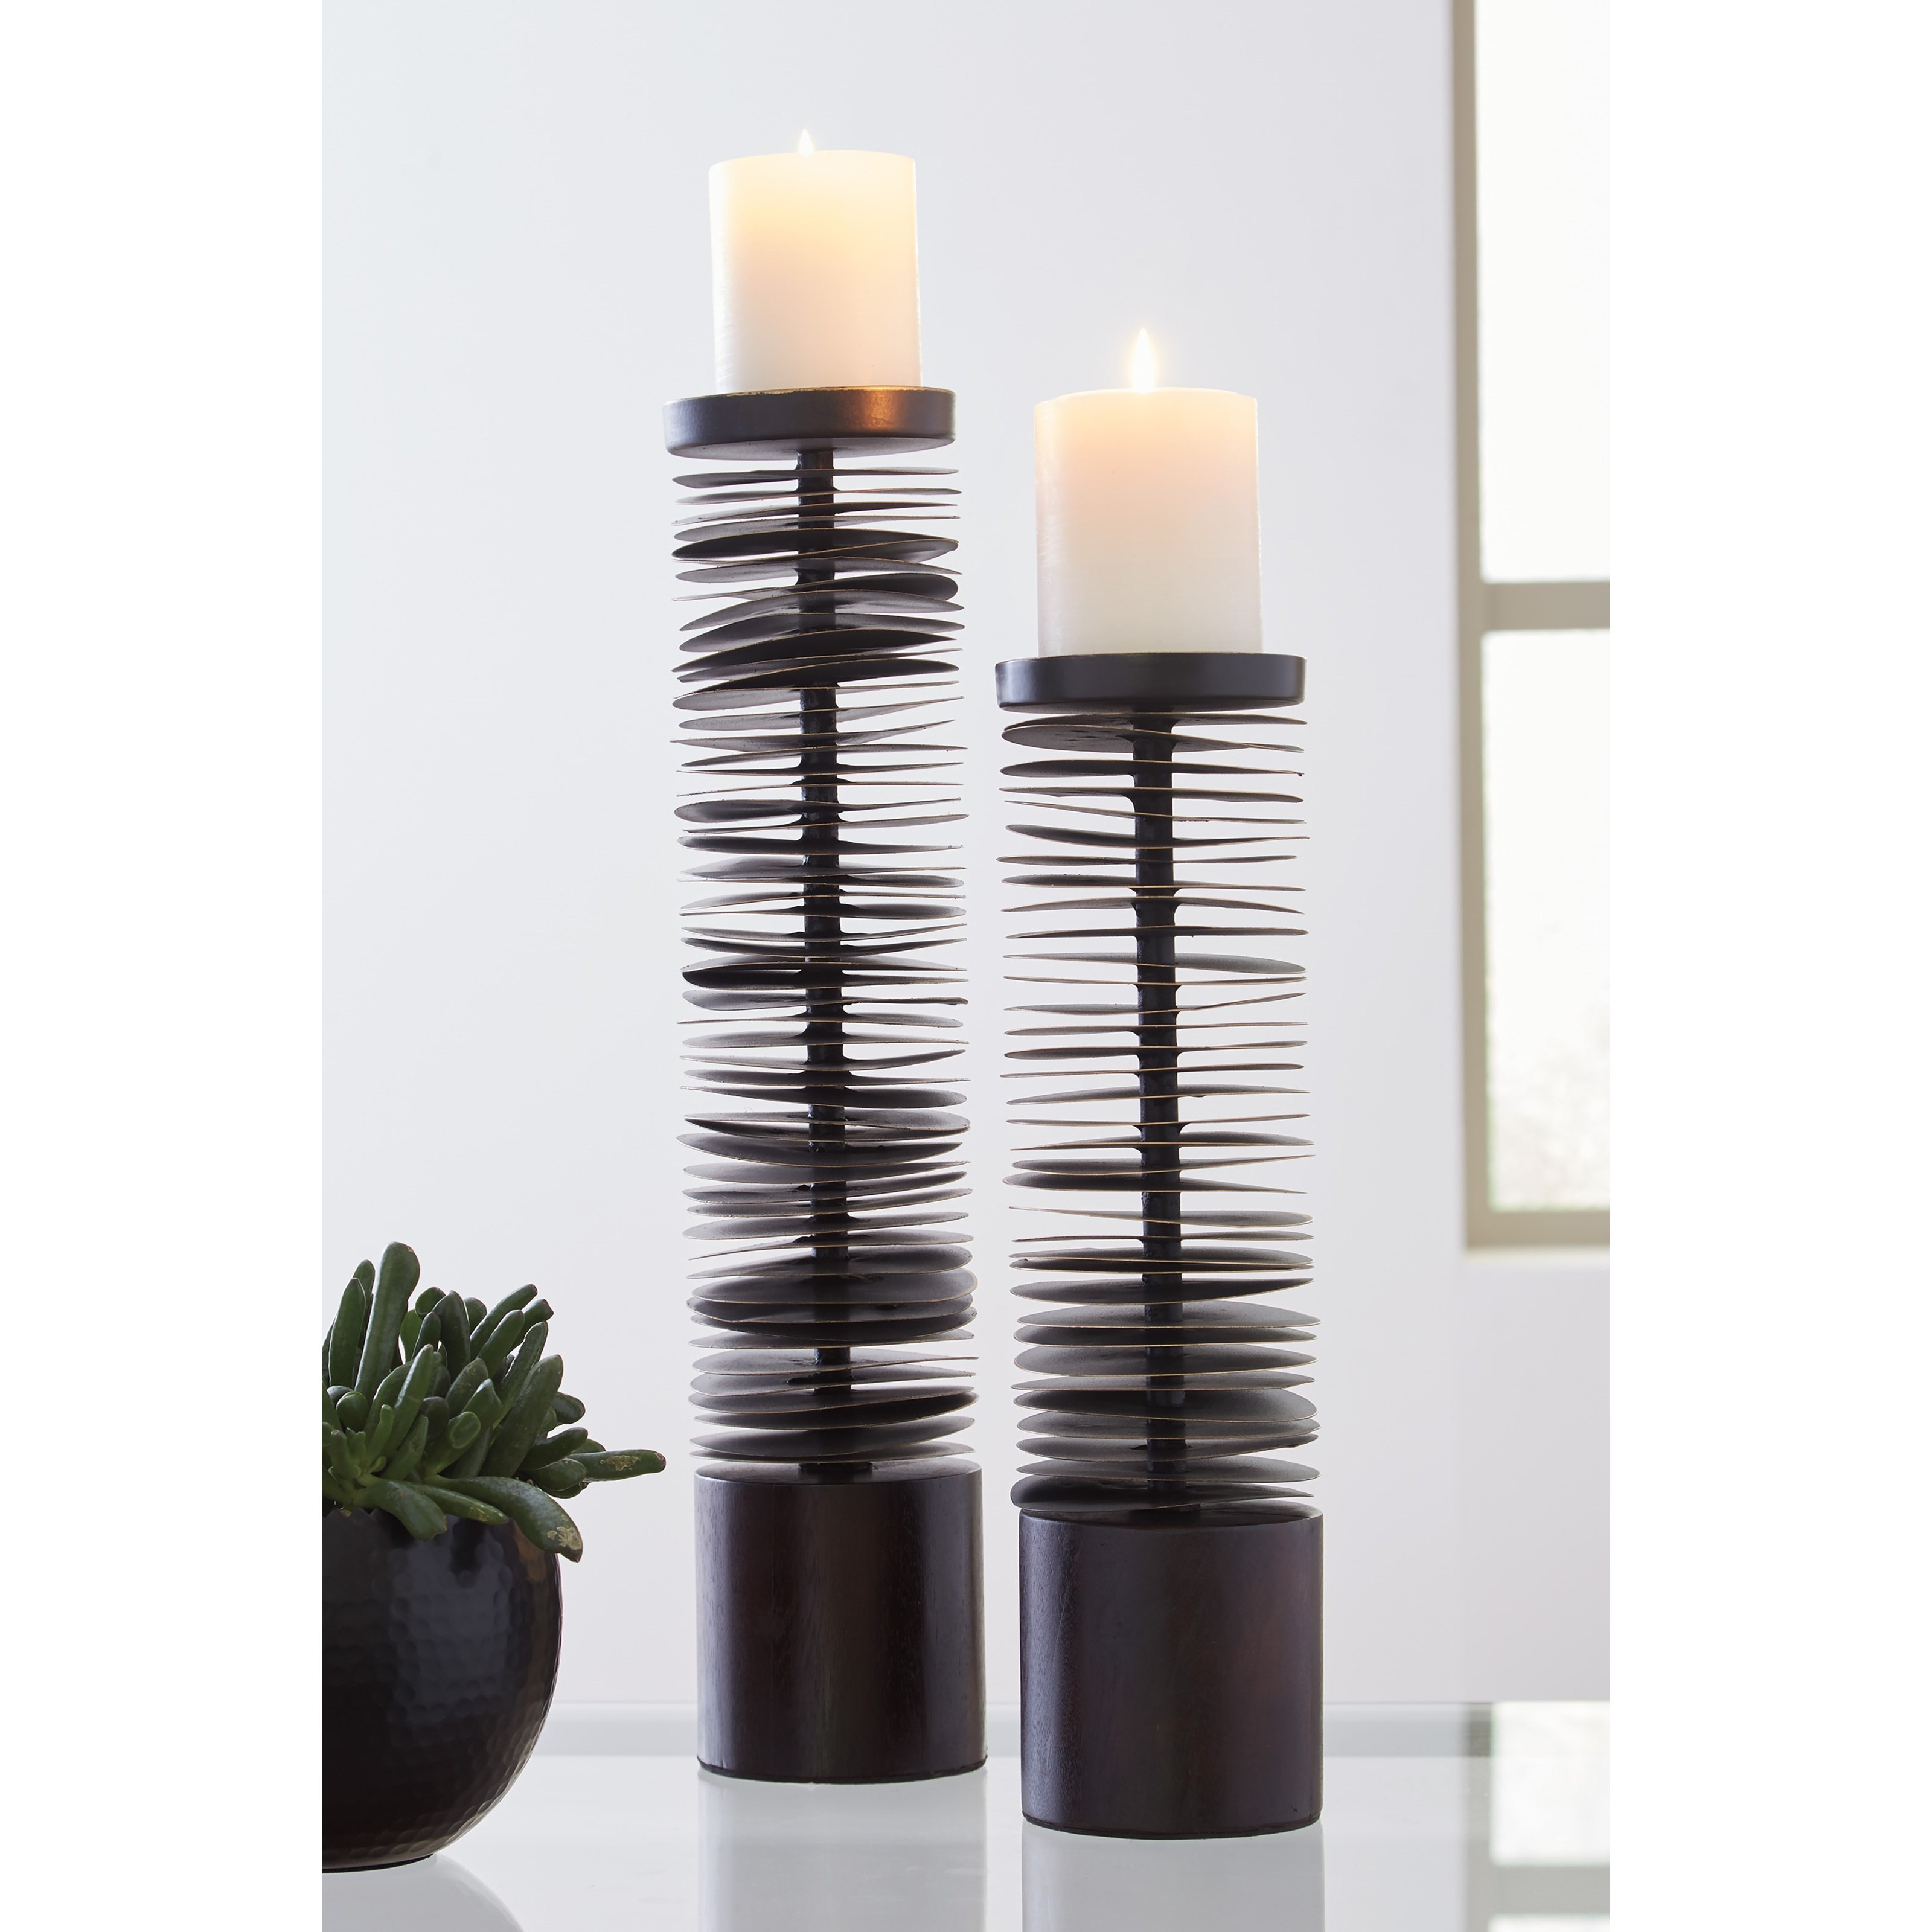 Signature Design by Ashley Accents Constance Brown Metal Candle Holder Set - Item Number: A2000199